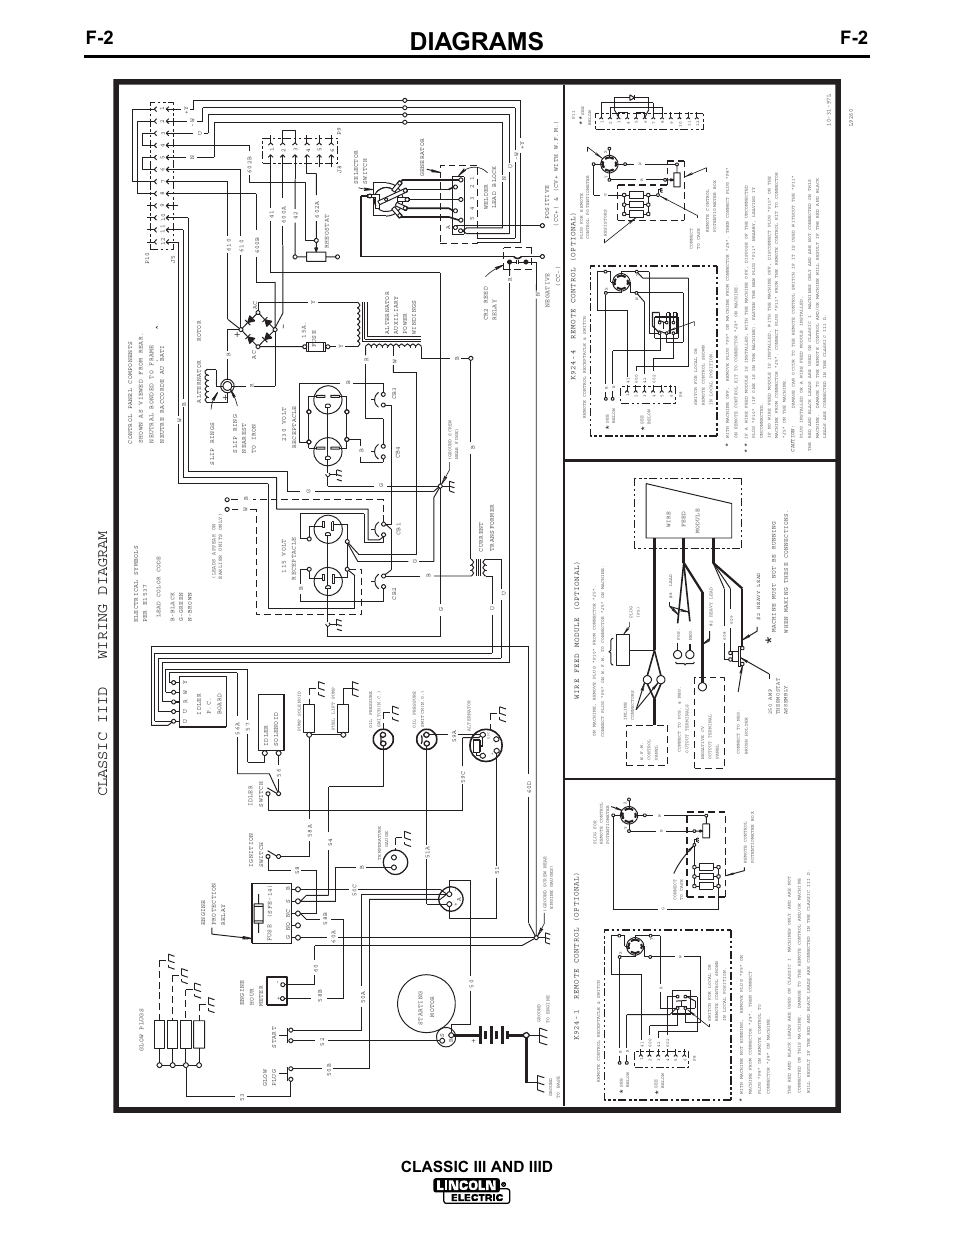 Classic Ii Welder Wiring Diagram For Lincoln Fuse Engine Schematic Diagrams Iii And Iiid Rh Manualsdir Com Sa 200 225 Dc